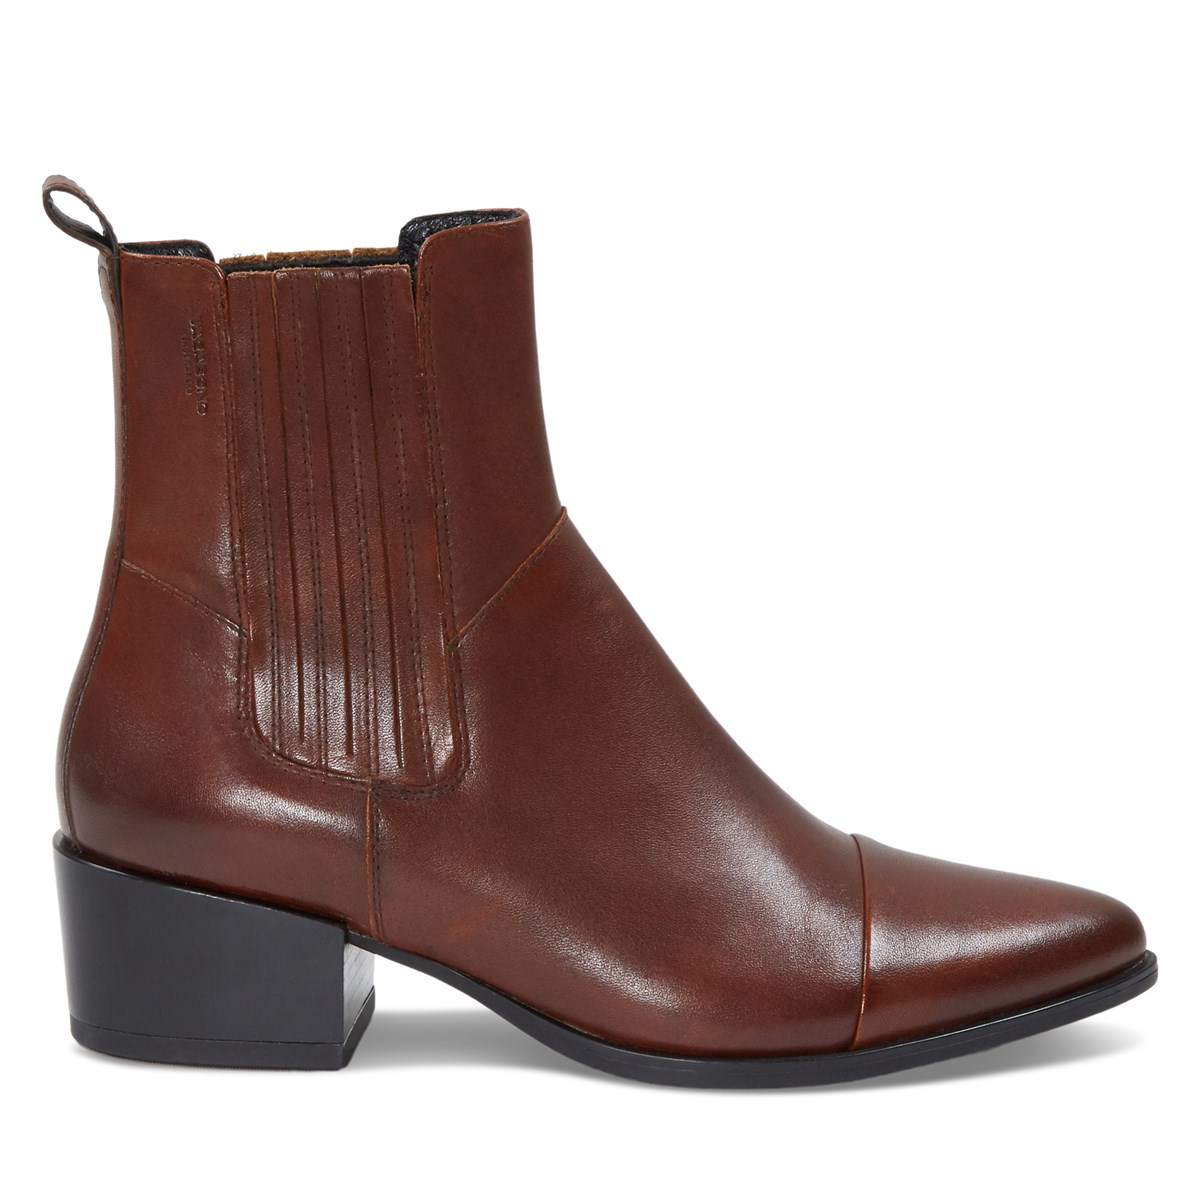 Women's Marja Toe Chelsea Boots in Brown